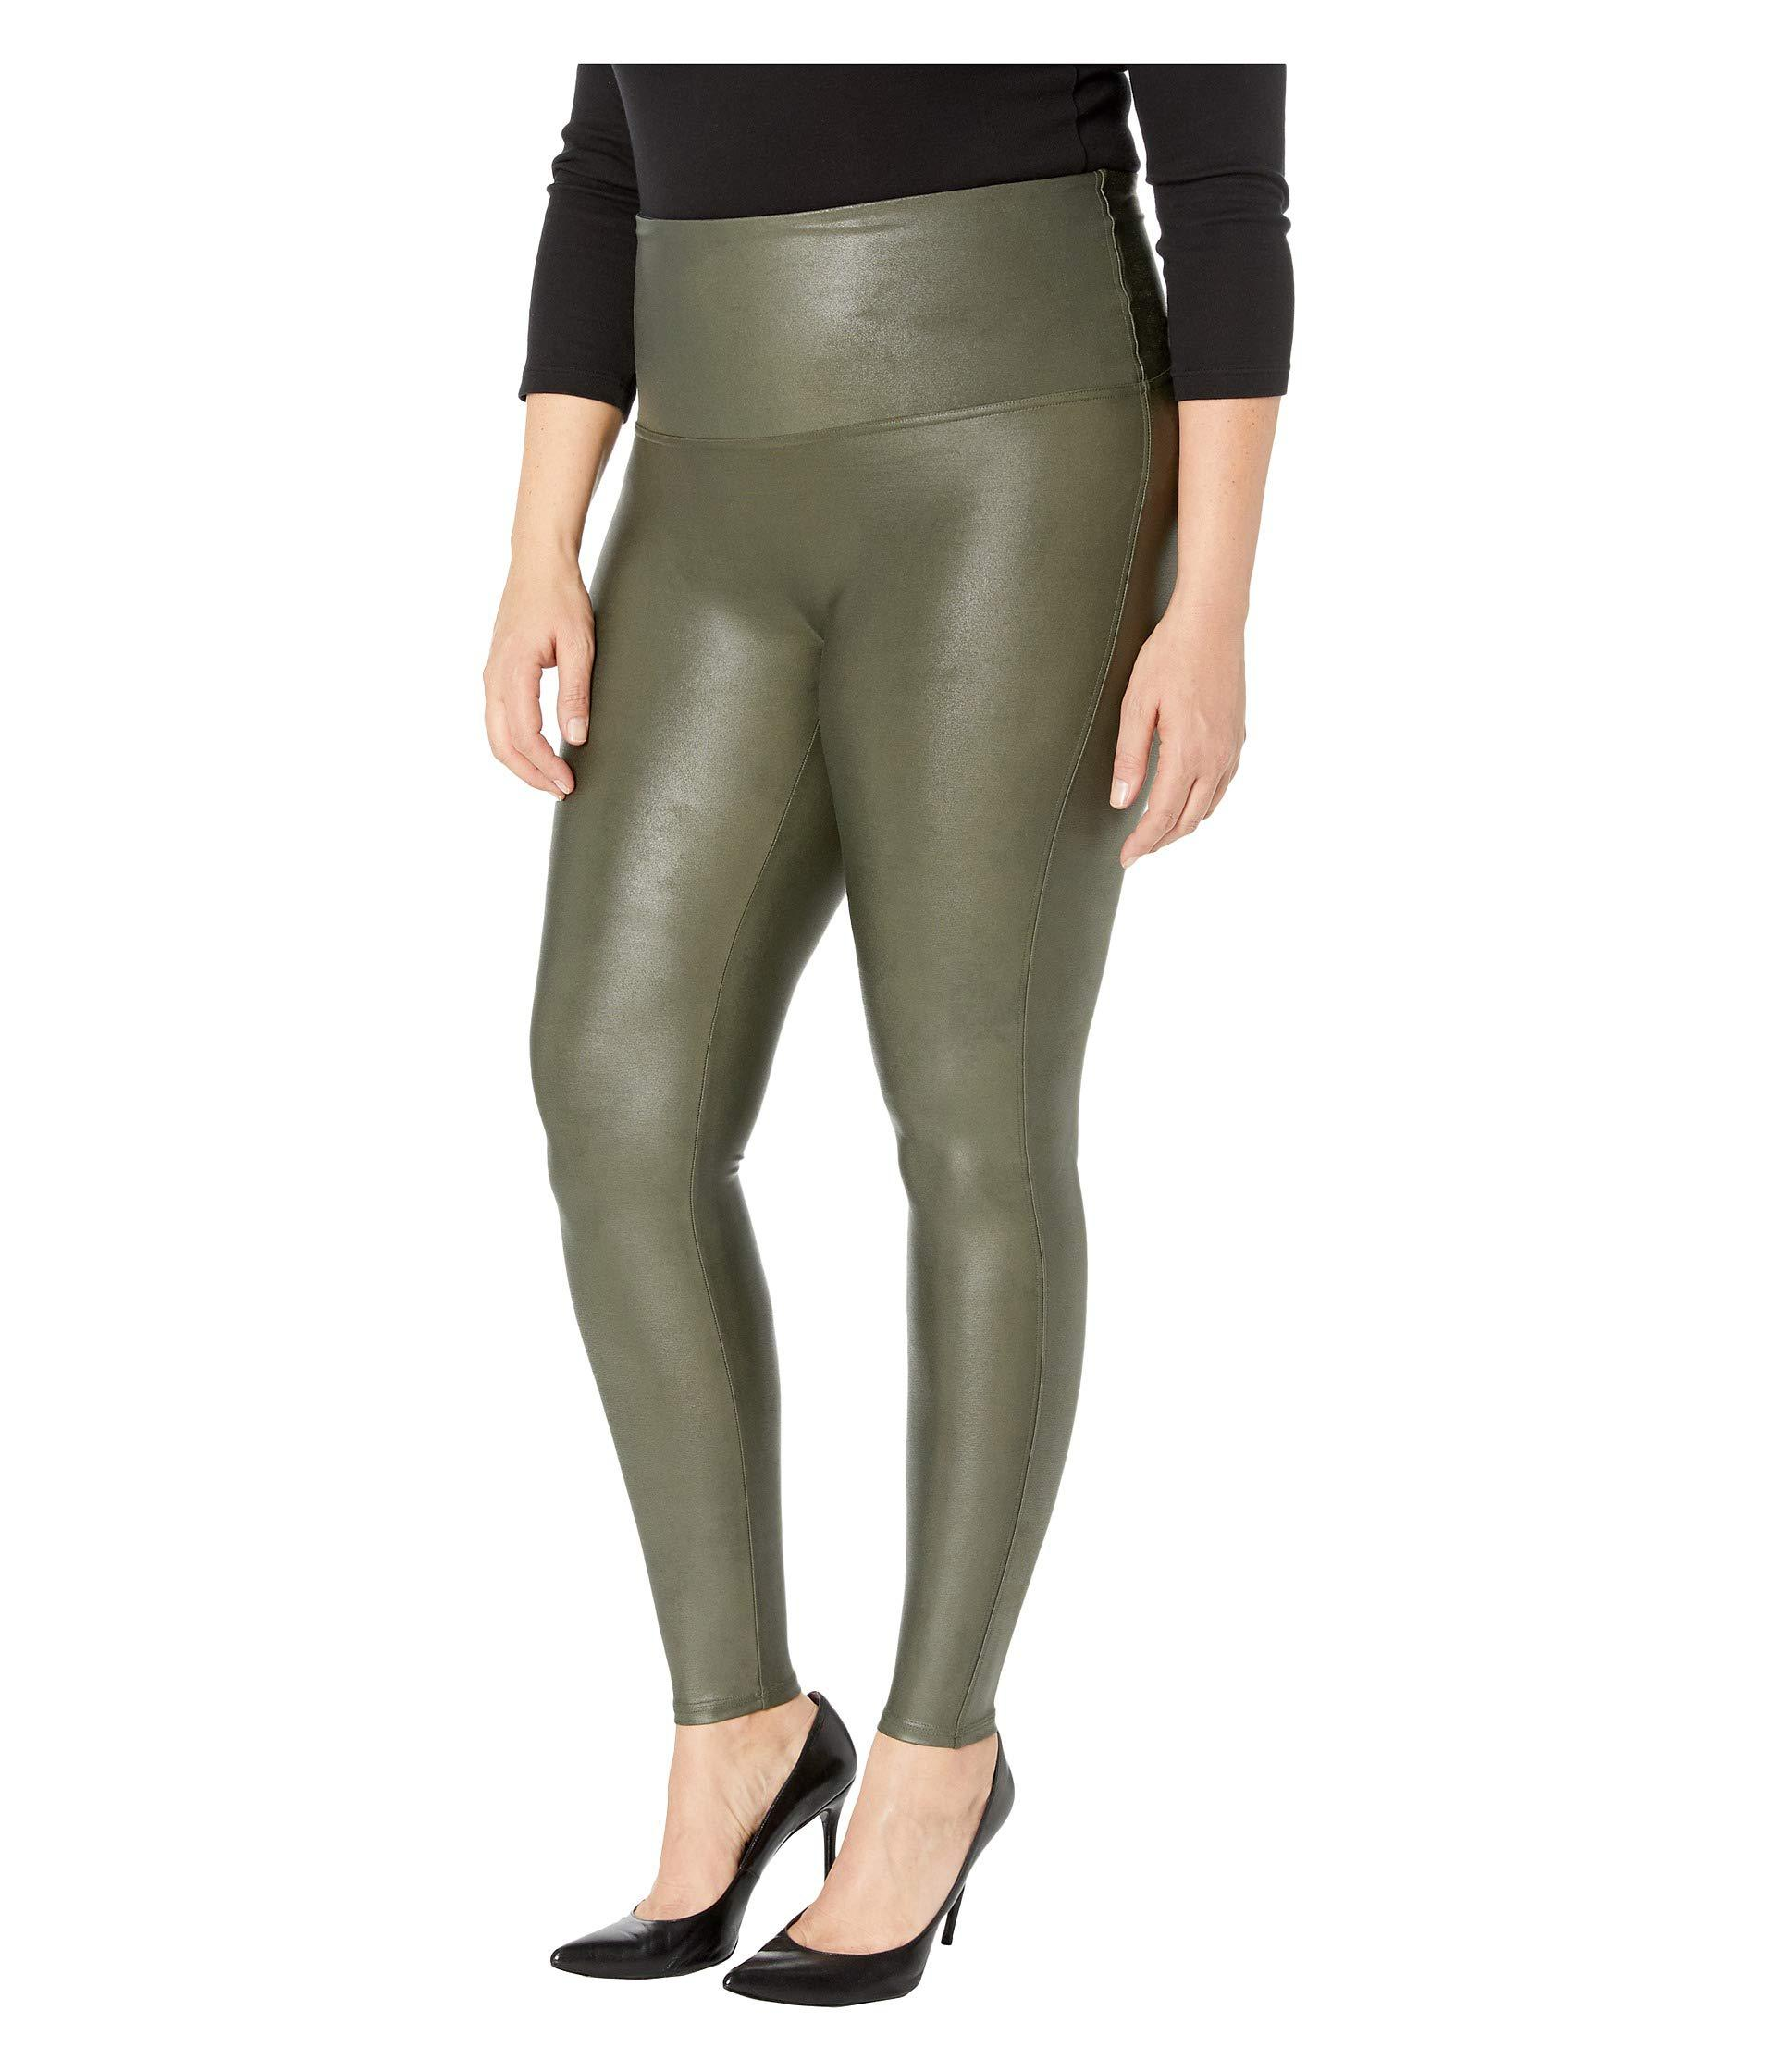 ee5126ad58d1 Lyst - Spanx Plus Size Faux Leather Leggings (black) Women s Clothing in  Green